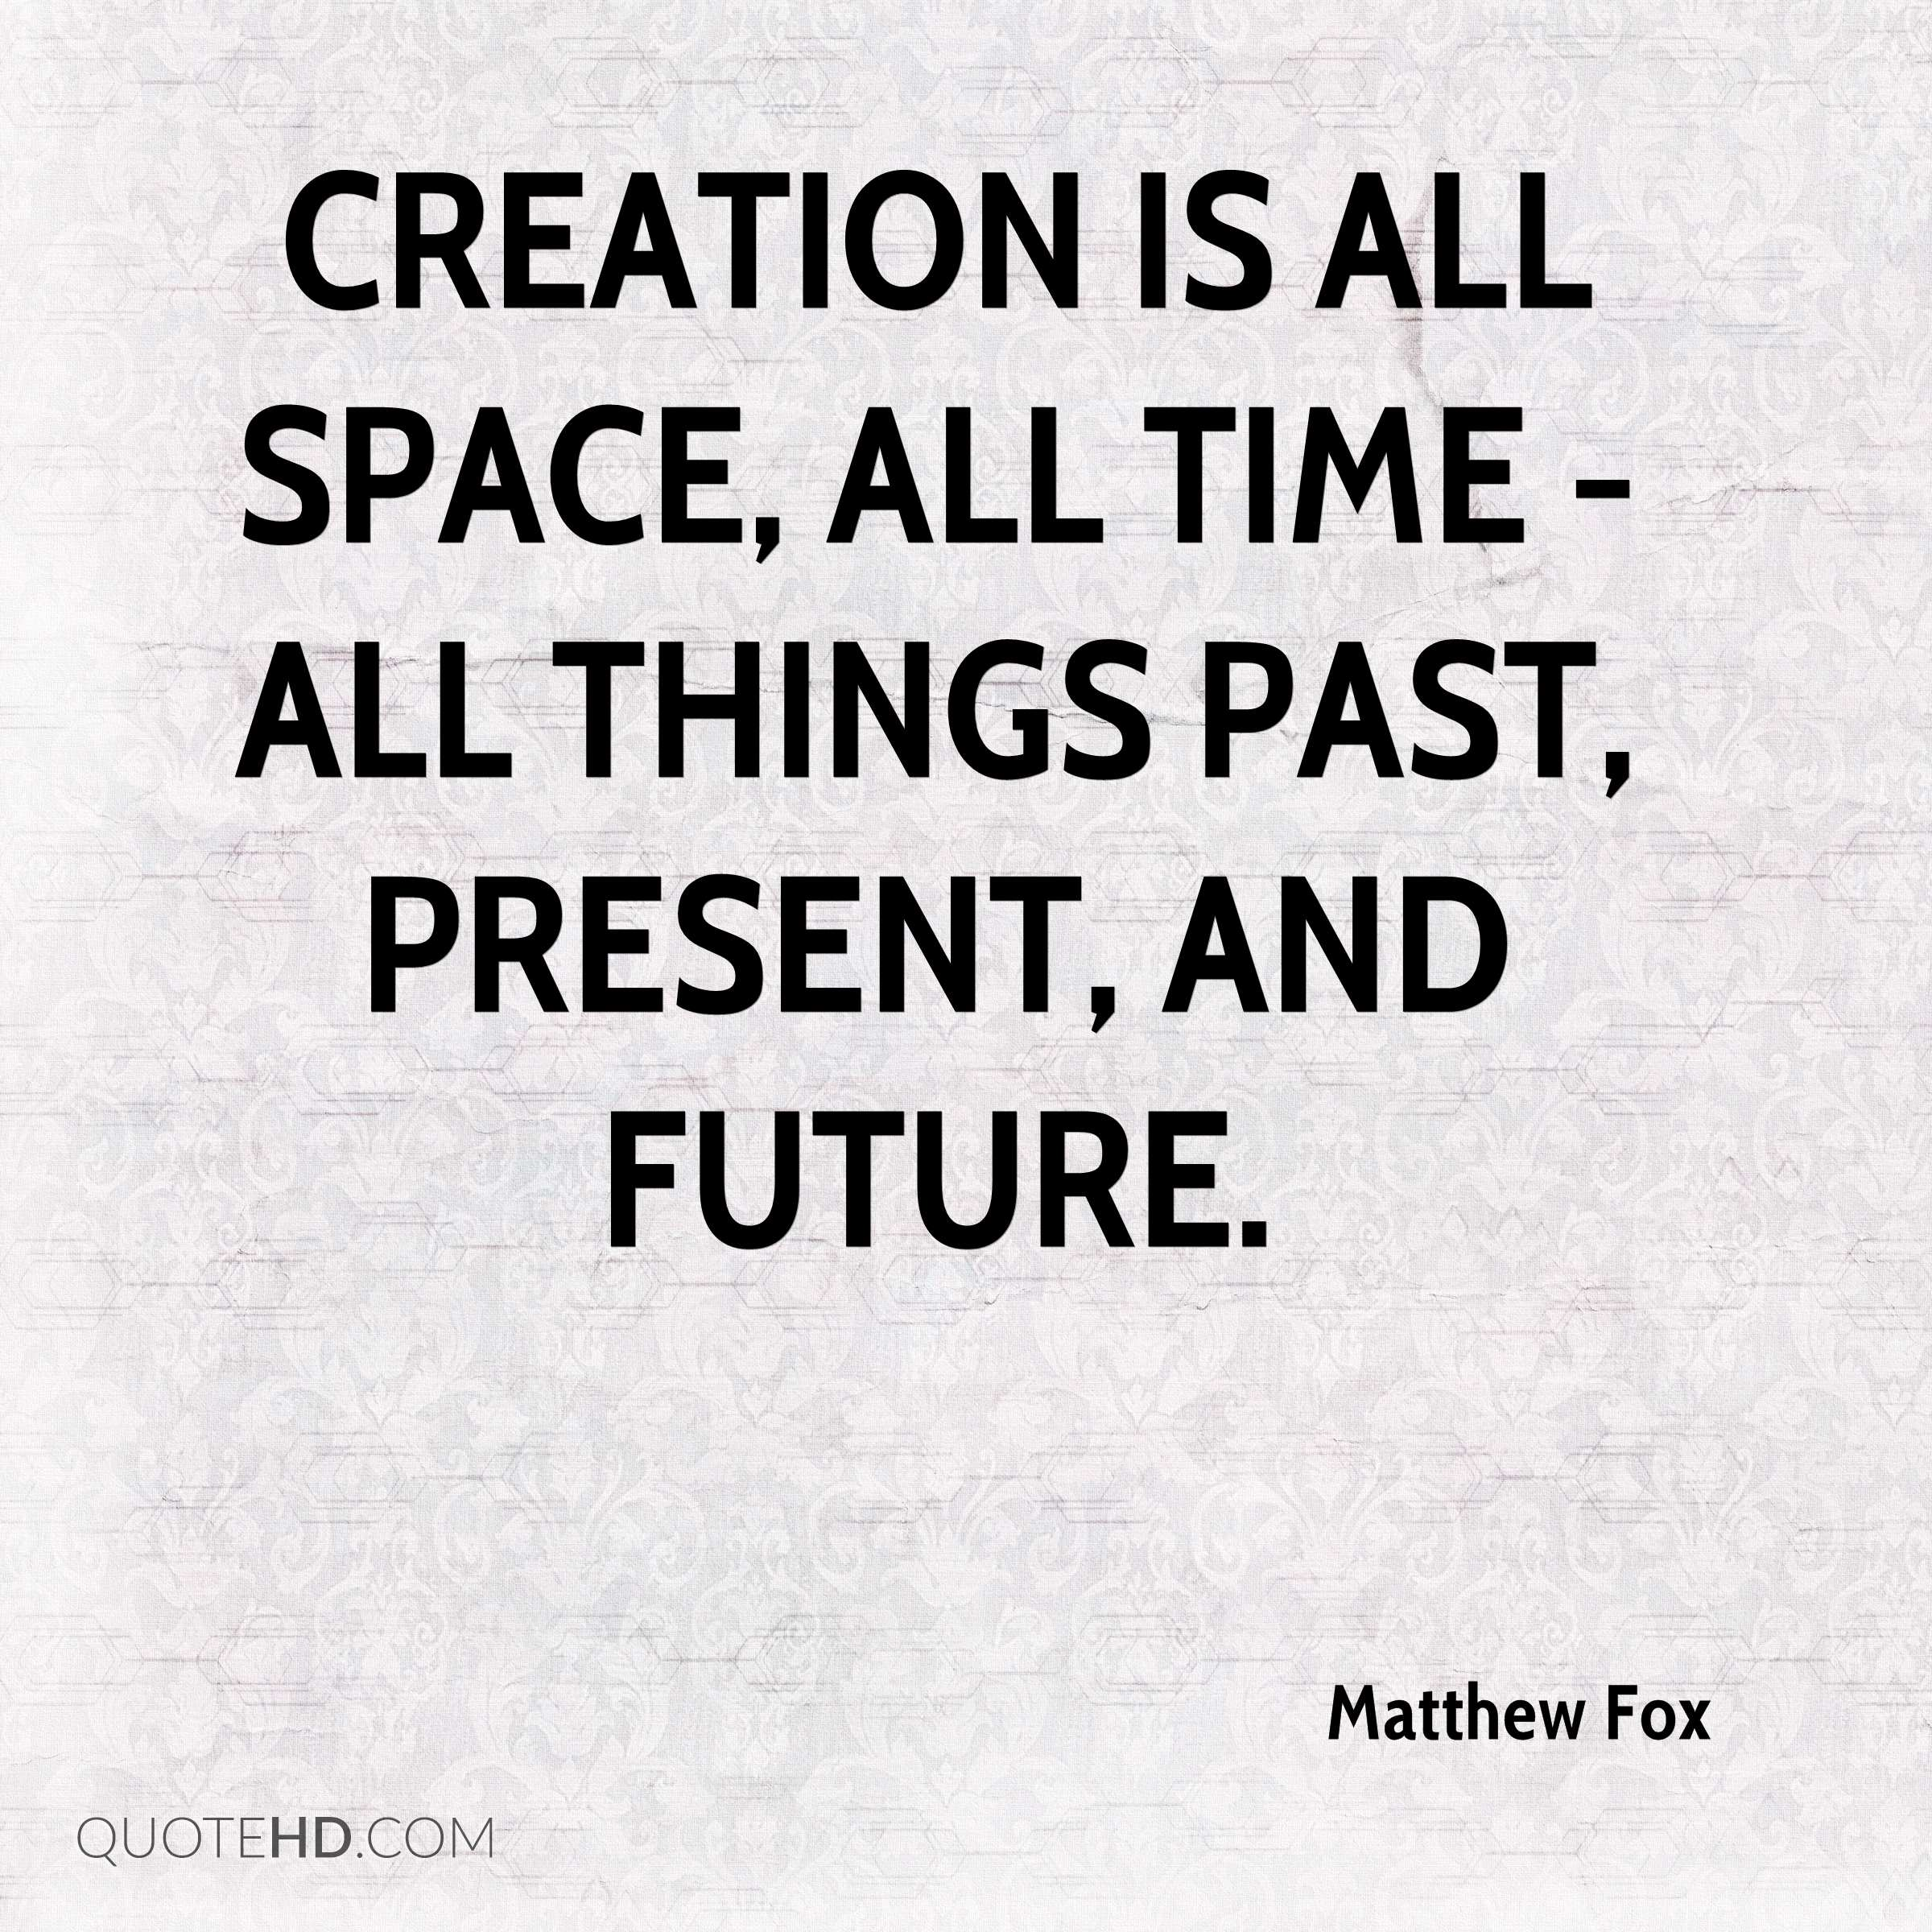 Creation is all space, all time - all things past, present, and future.